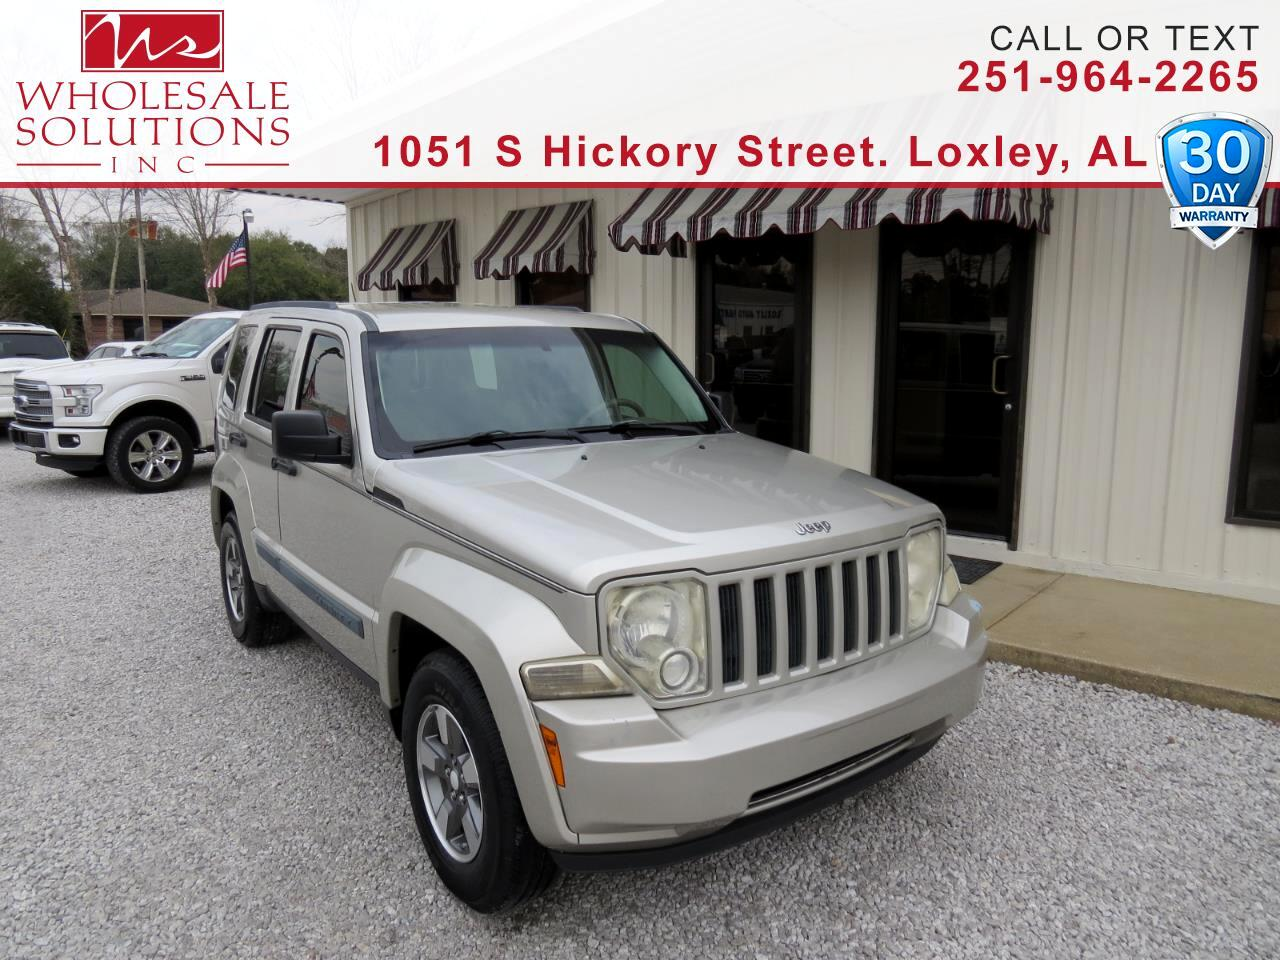 2008 Jeep Liberty 2WD 4dr Sport